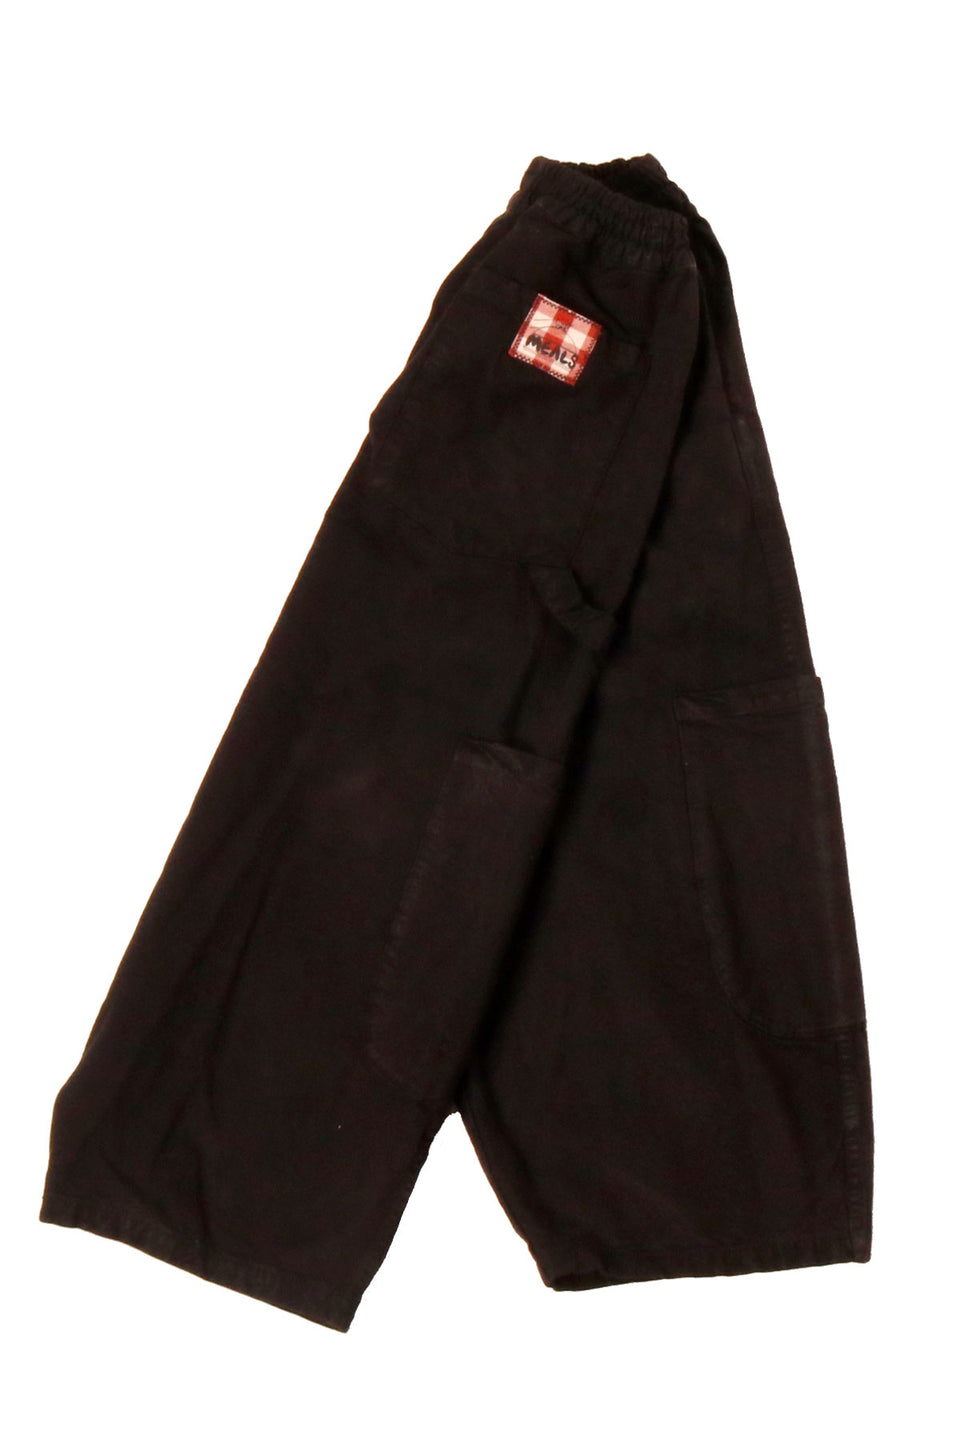 Licorice Chef Pant